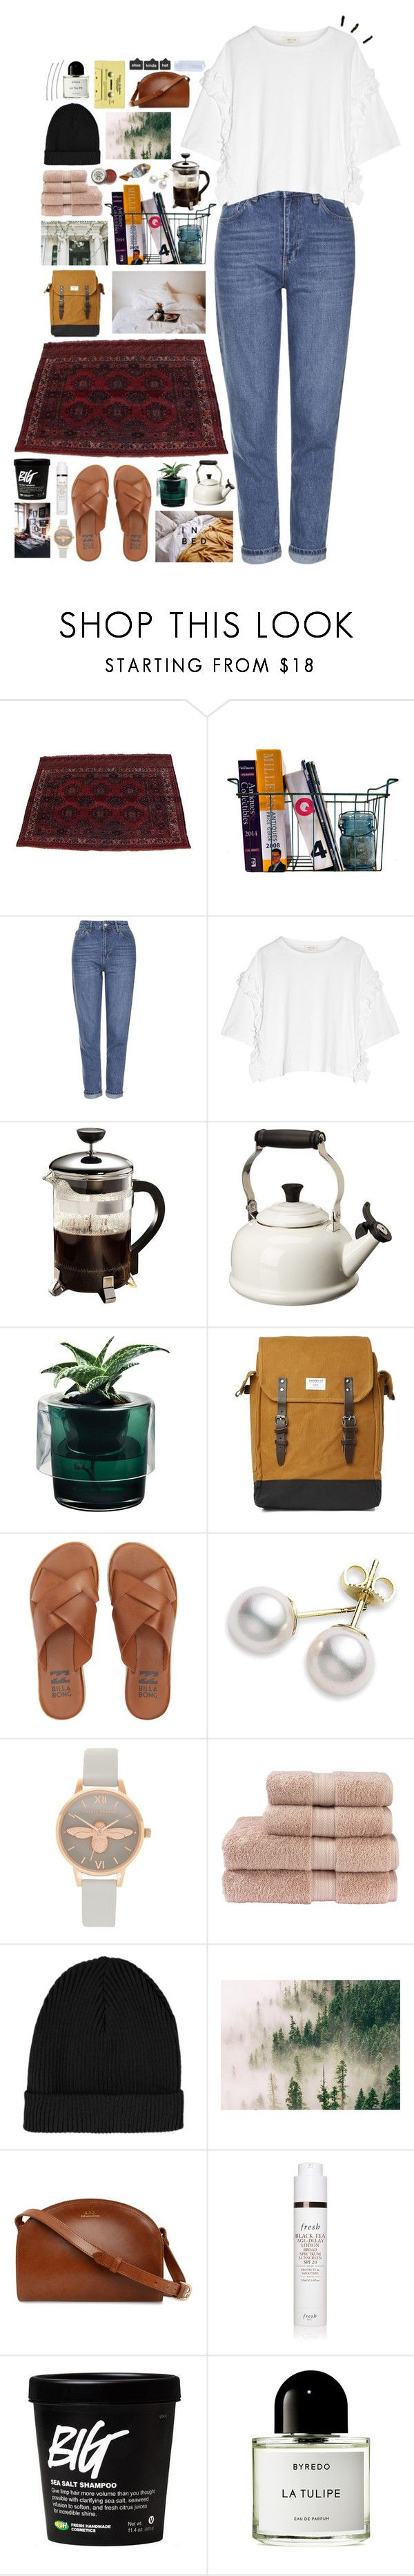 """""""RAINWATER STUCK IN HIS HEAD, IT FILLED HIM WITH WORDS LEFT UNSAID"""" by kappucino ❤ liked on Polyvore featuring Topshop, Steve J & Yoni P, Primula, Le Creuset, Nude, Sandqvist, Billabong, Mikimoto, Olivia Burton and Christy"""